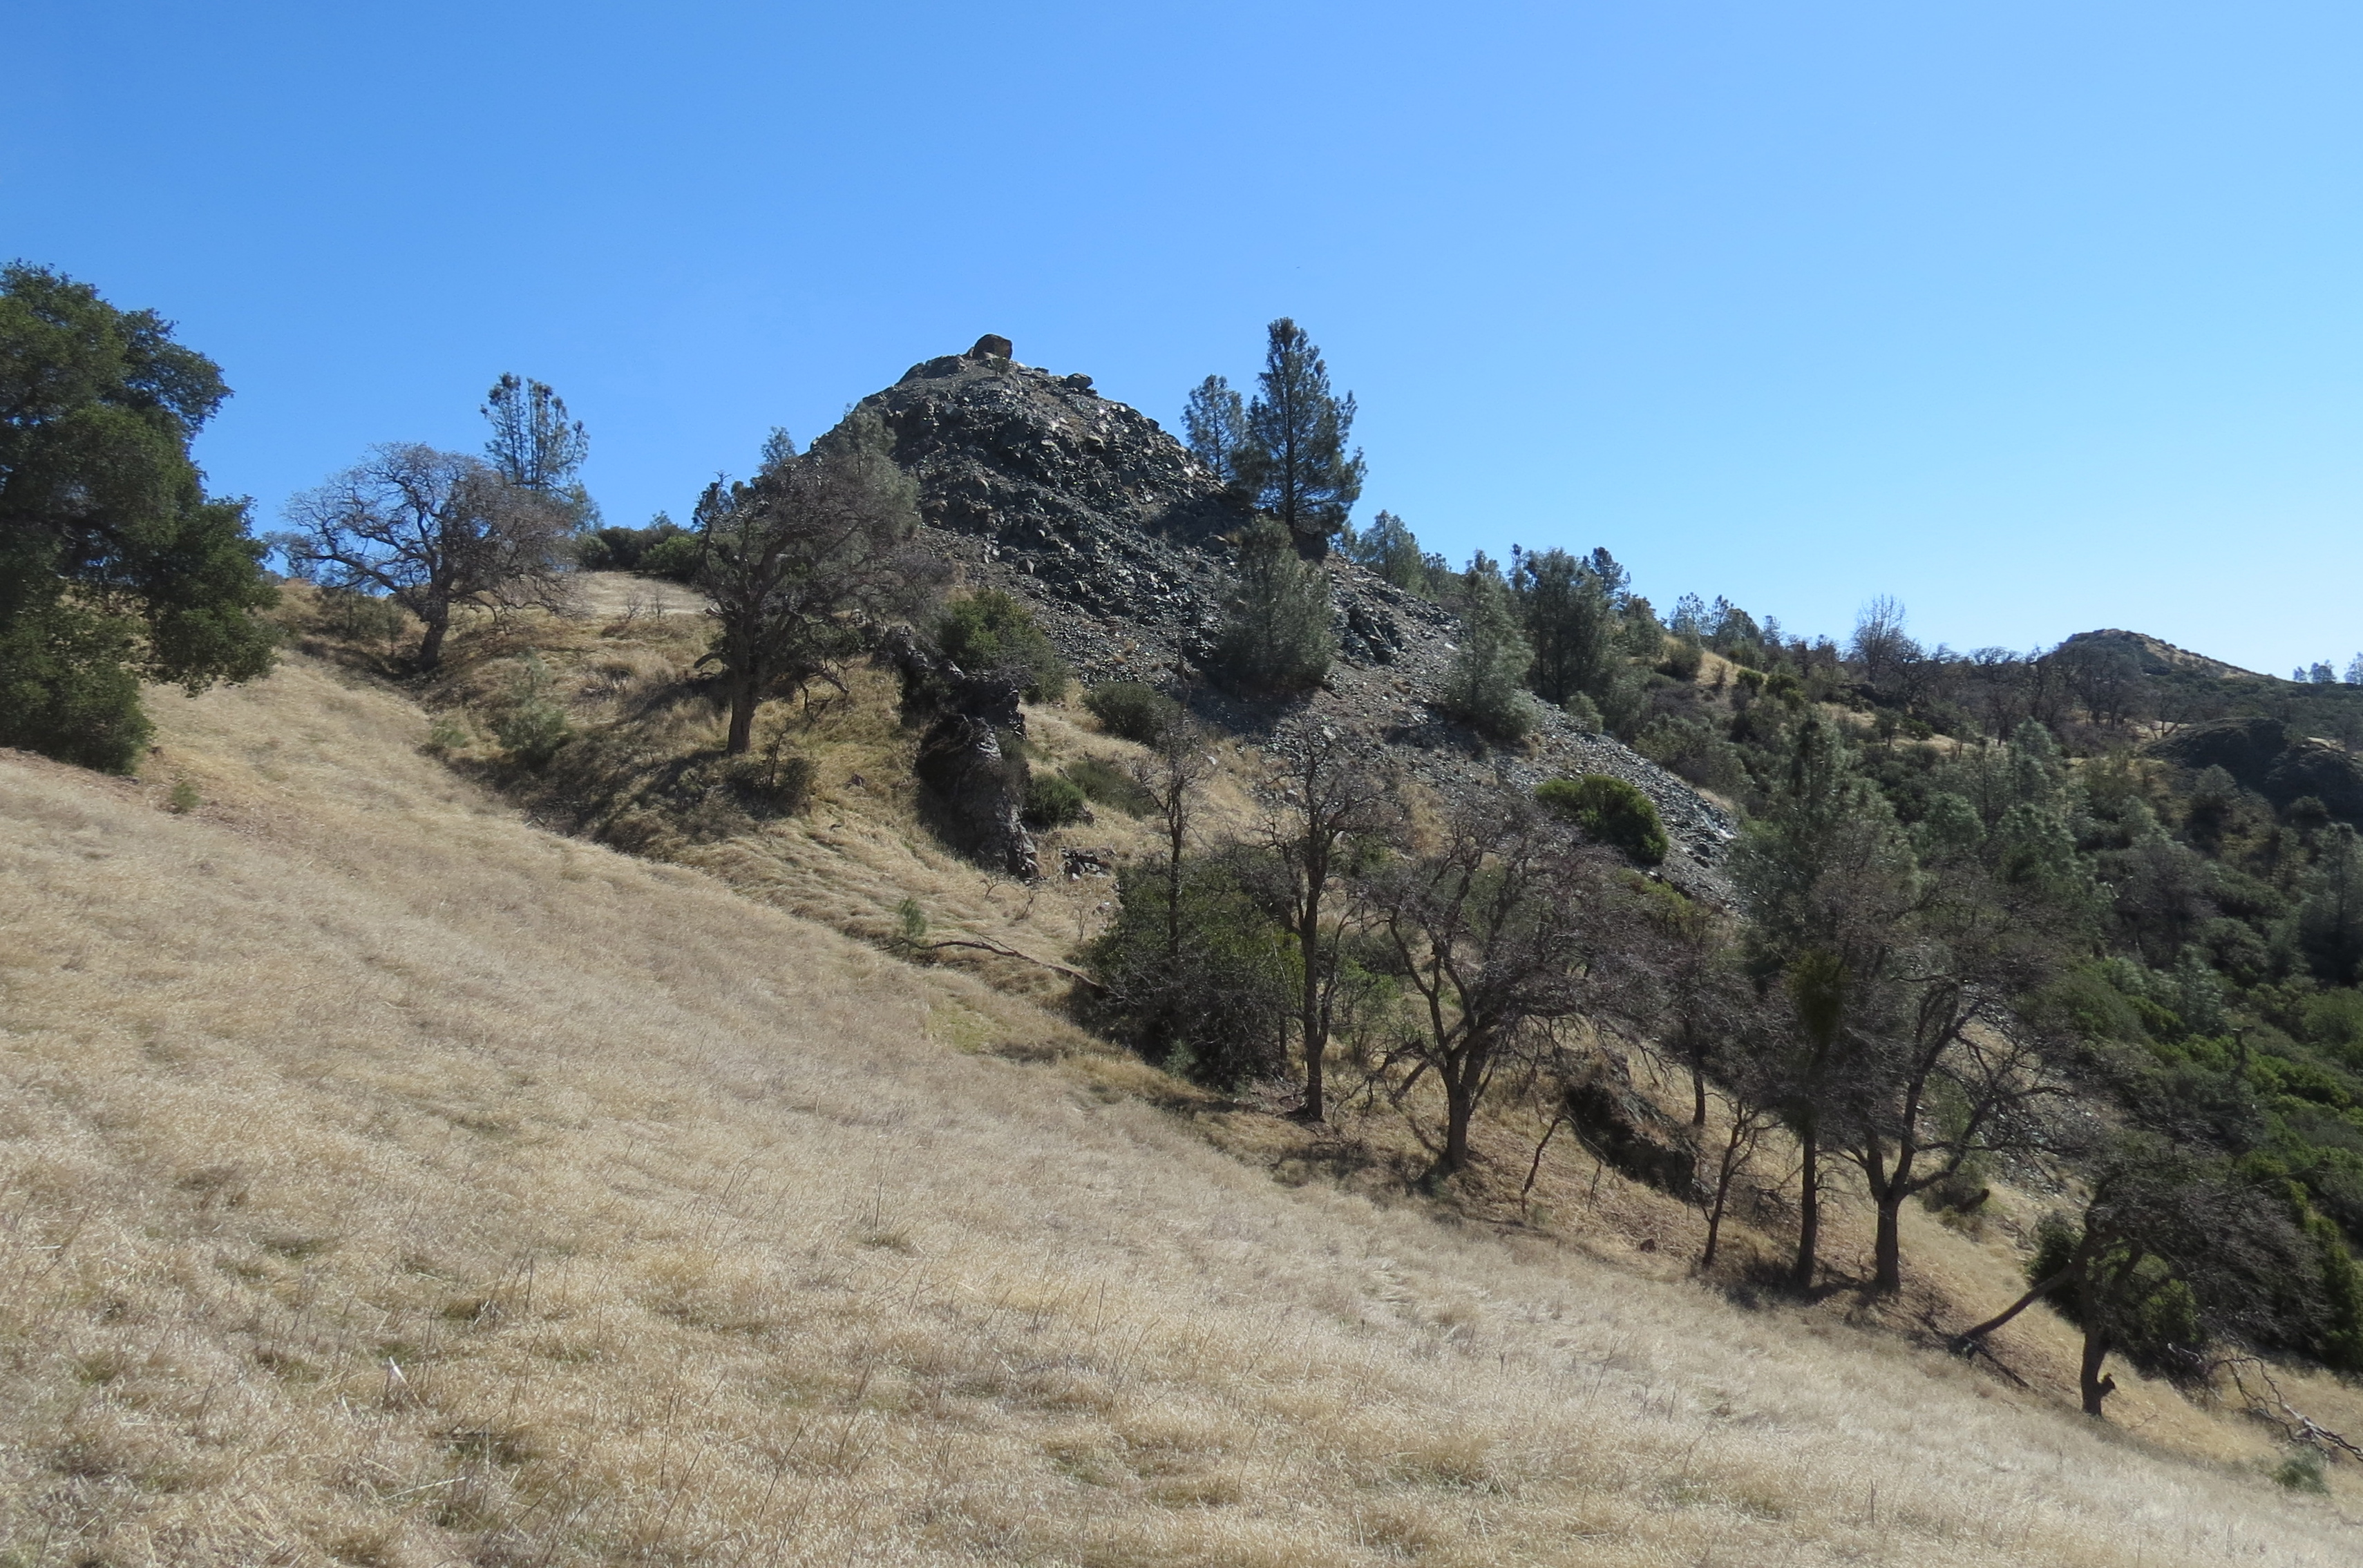 Blue Point Fir Canyon Davy Brown Trail Figueroa Mountain Serpentine Los Padres National Forest